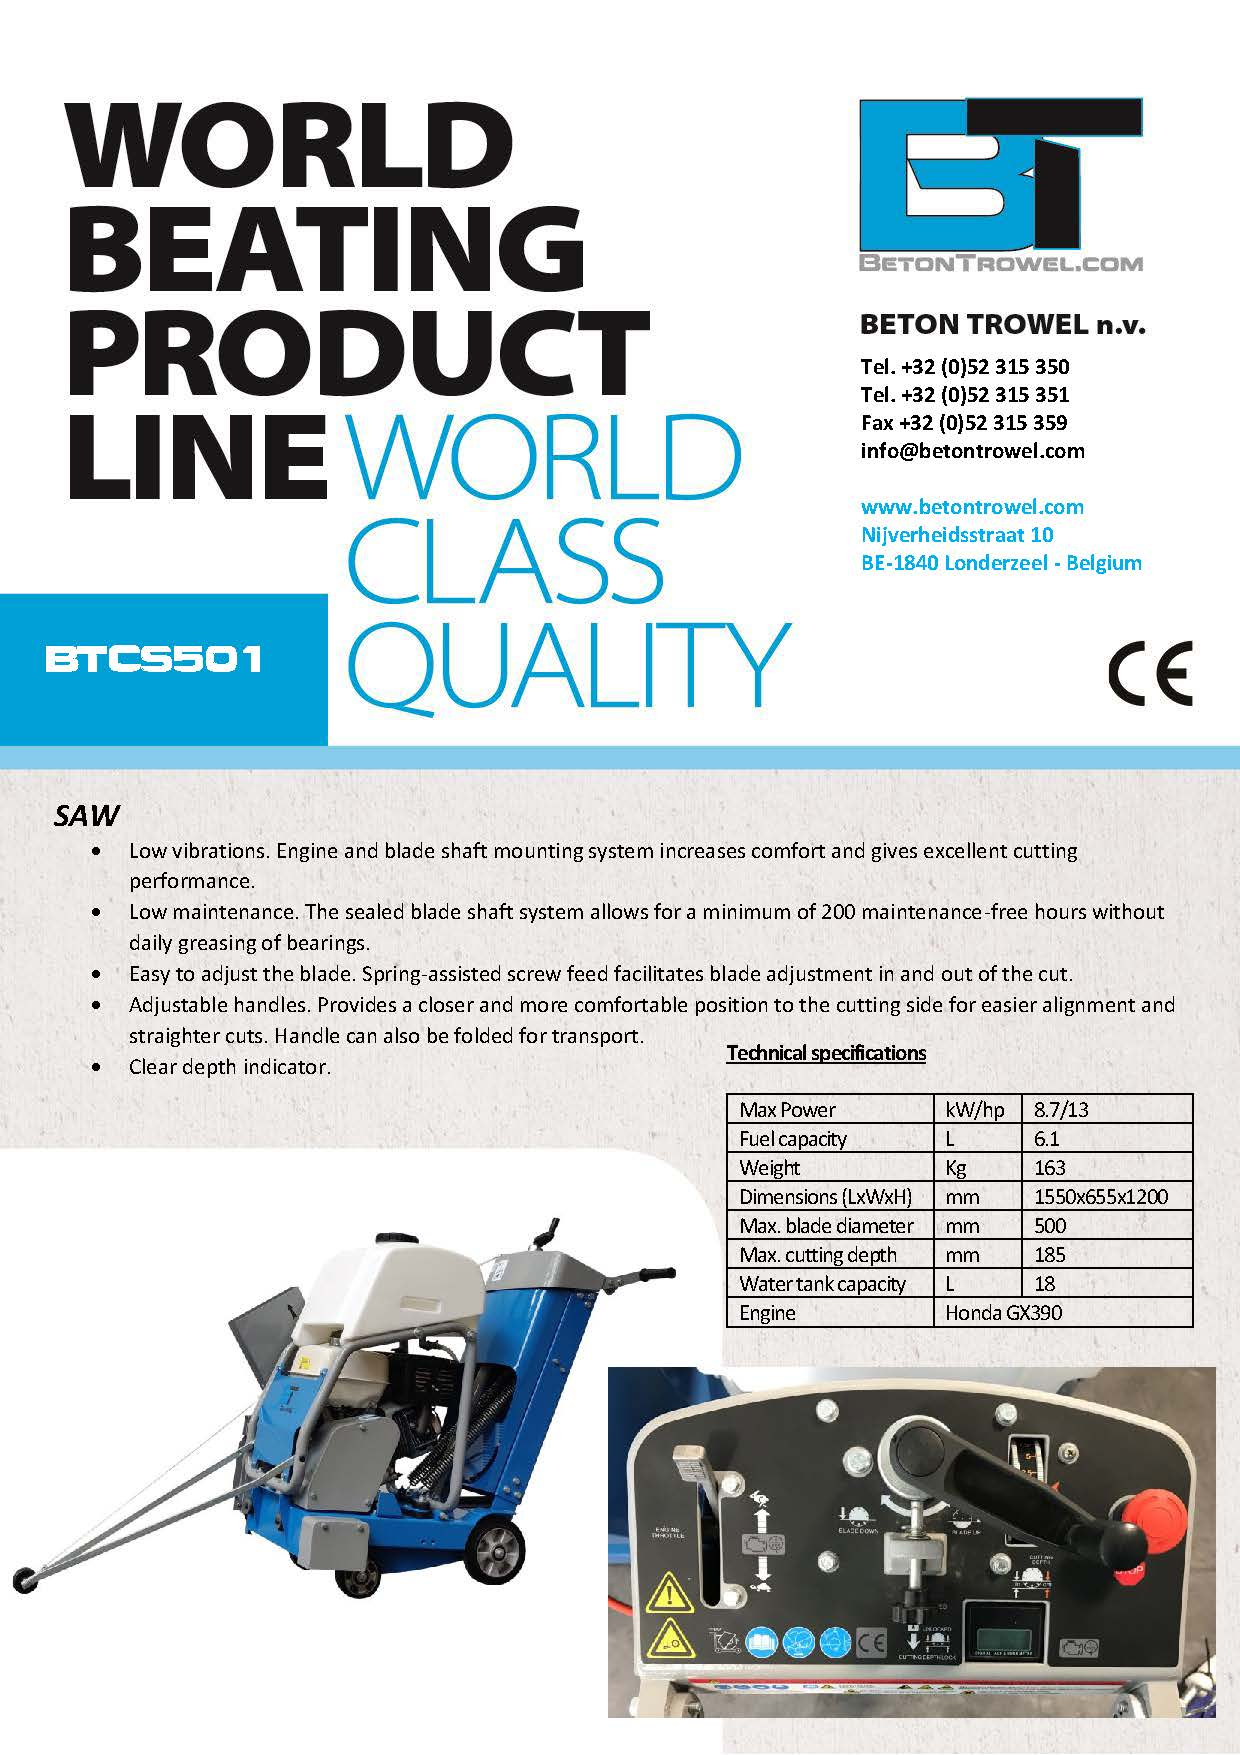 BTCS501-Concrete floor saw